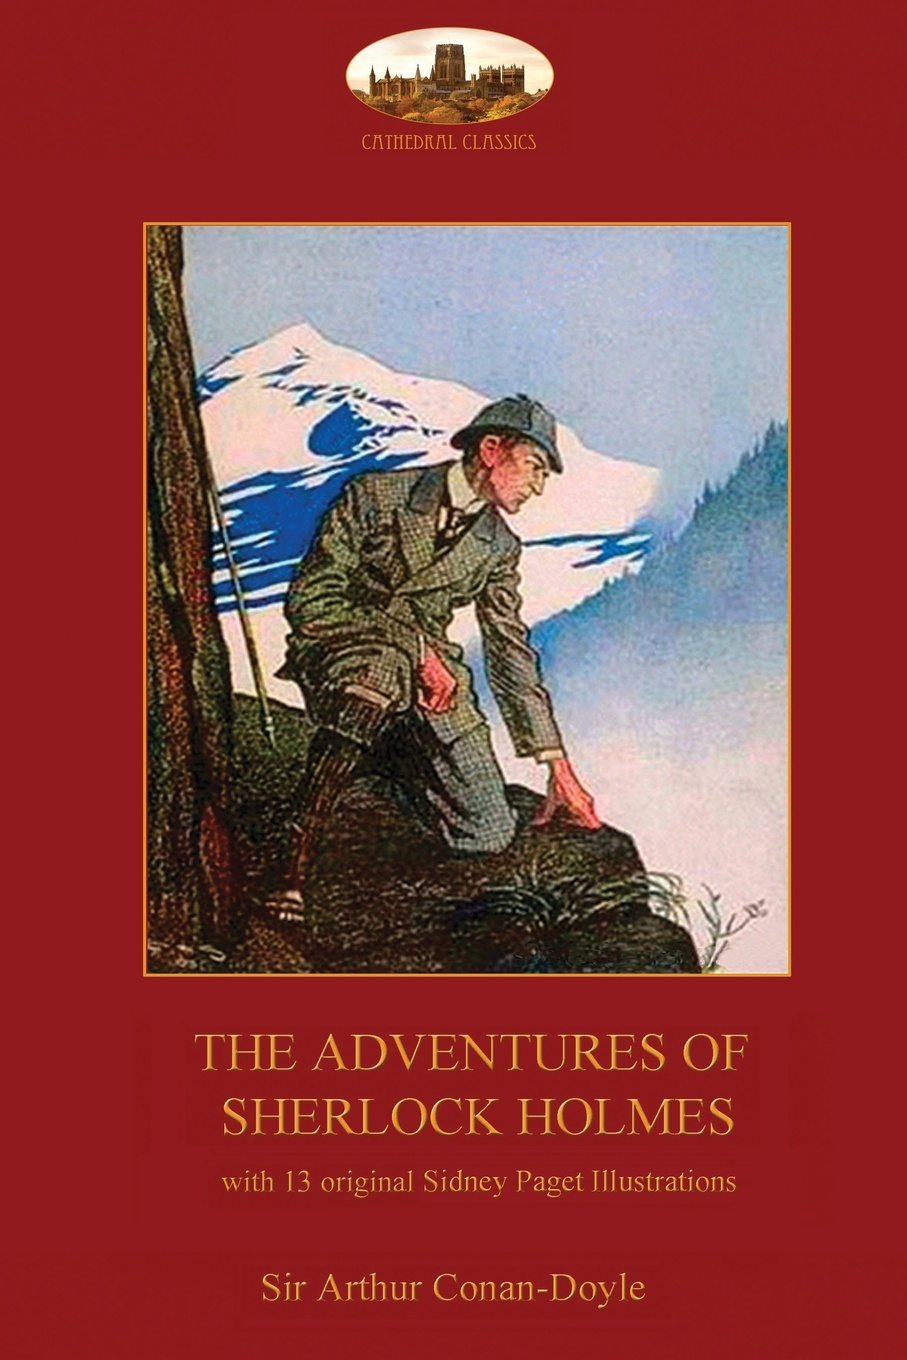 Arthur Conan Doyle The Adventures of Sherlock Holmes. with 13 original Sidney Paget illustrations (2nd. ed.)